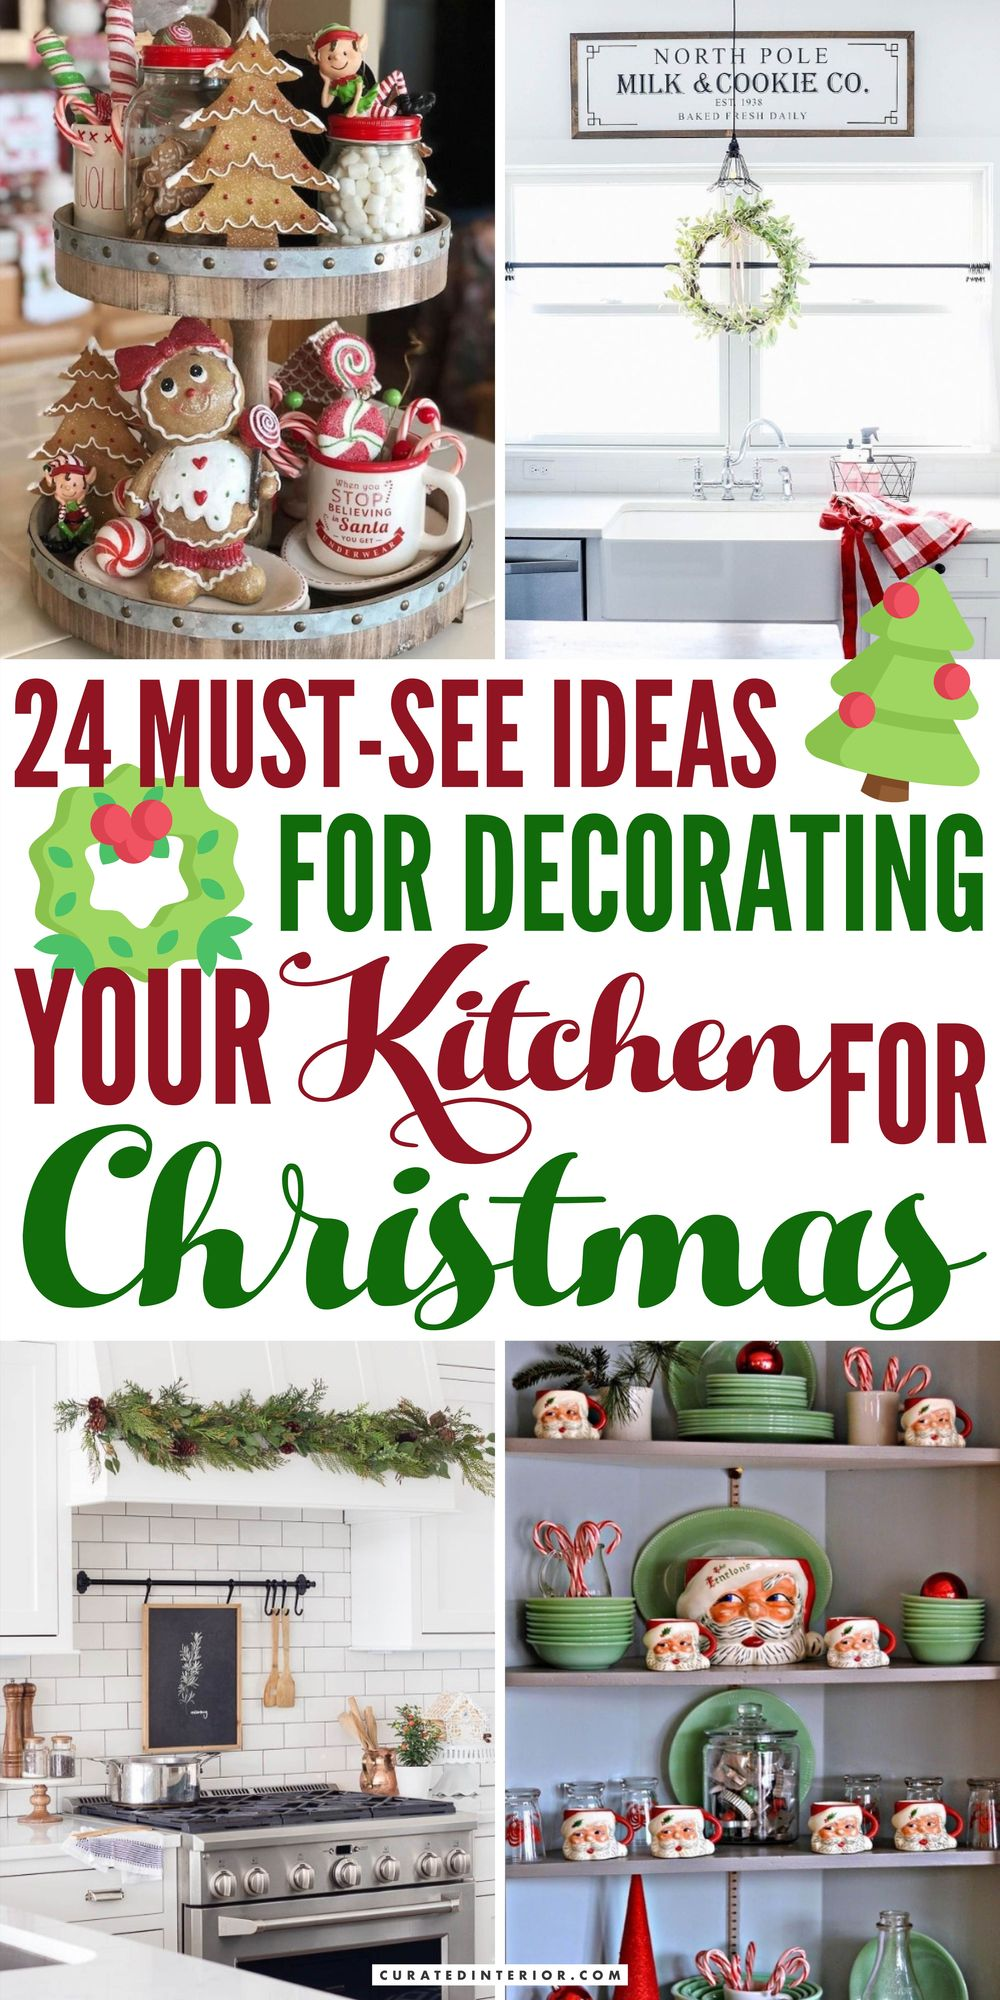 24 Must-See Ideas for Decorating Your Kitchen for Christmas